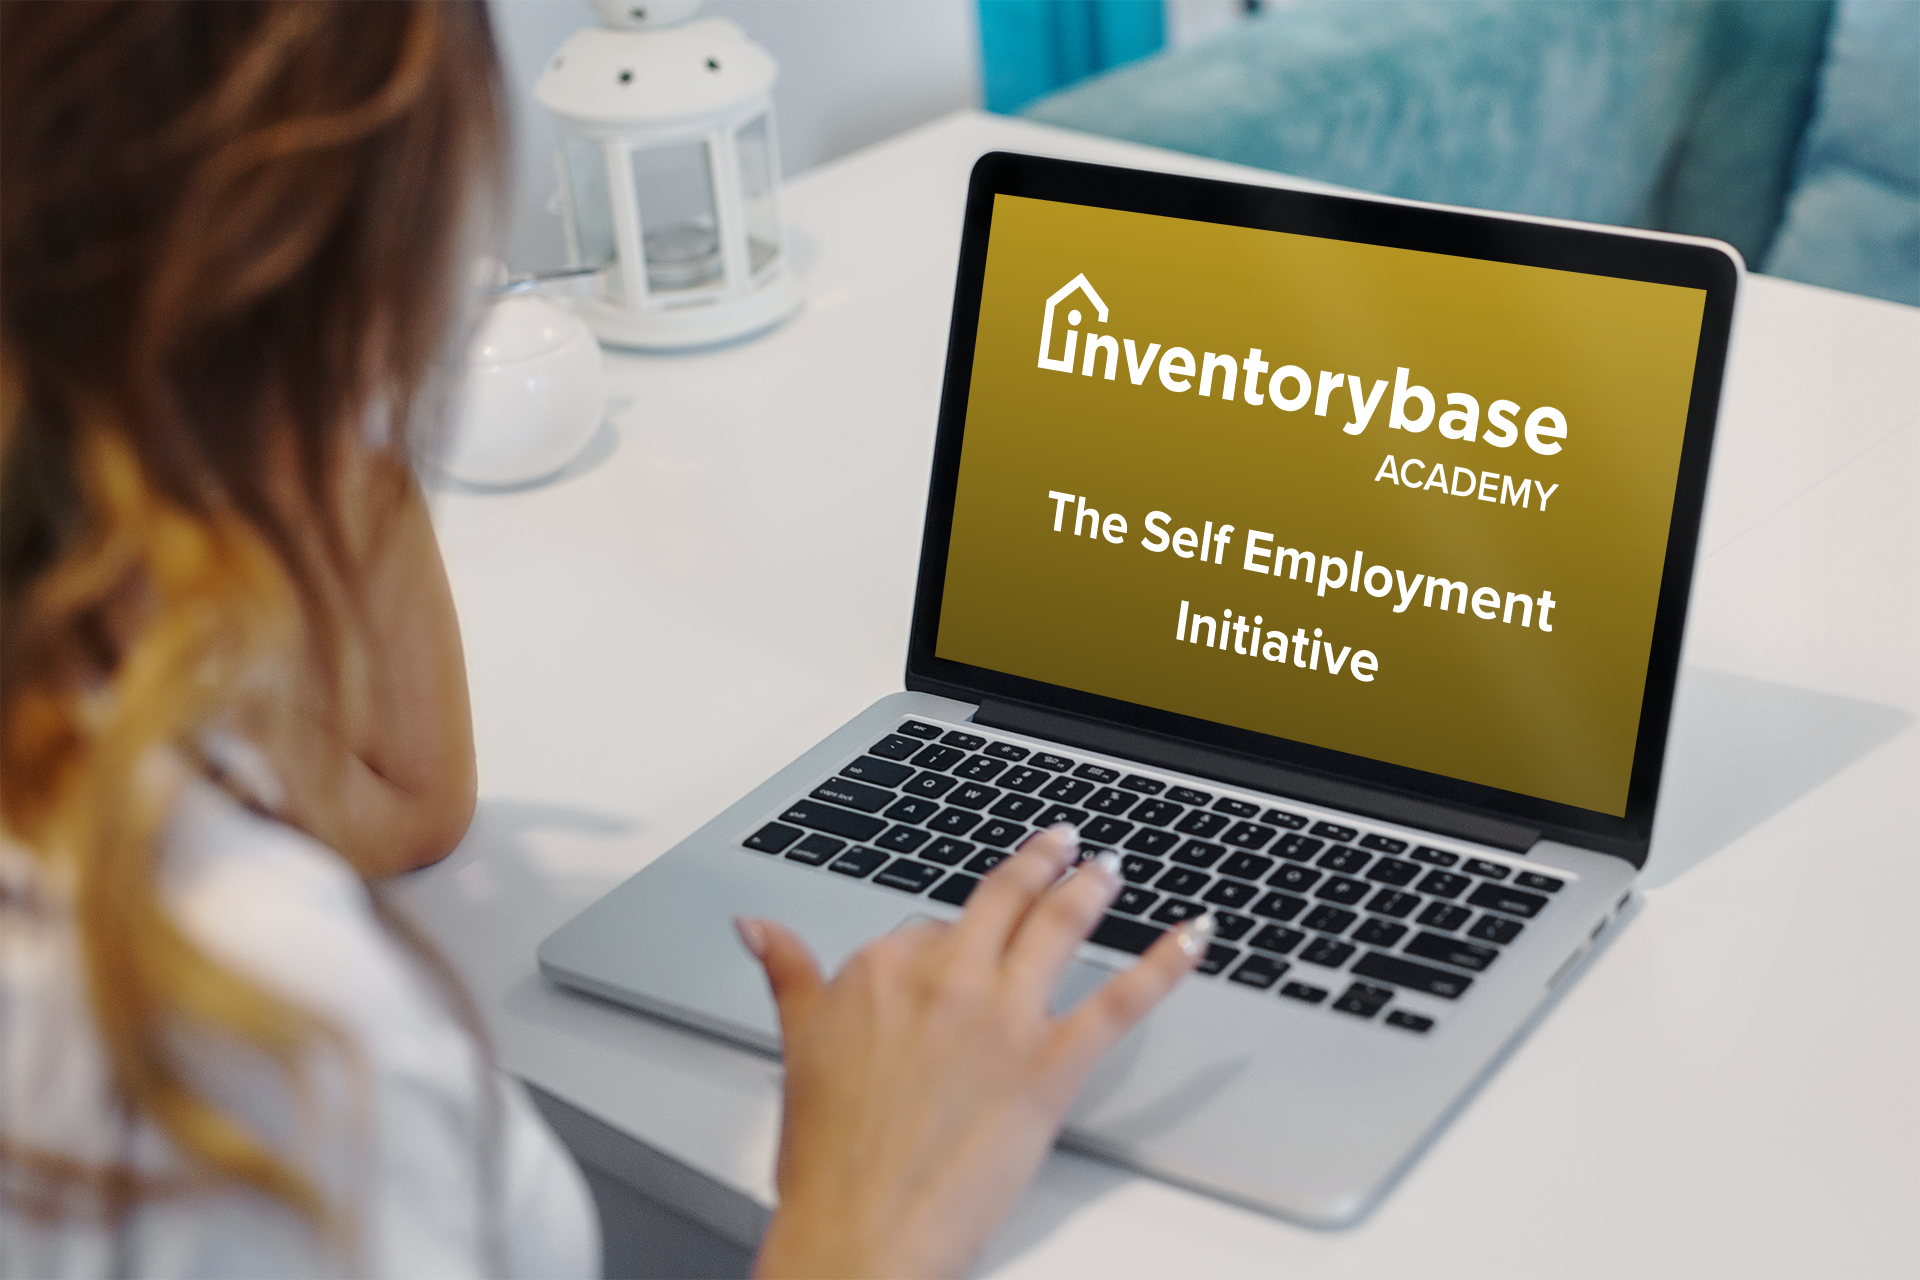 Q&A – InventoryBase Academy Self Employment Initiative